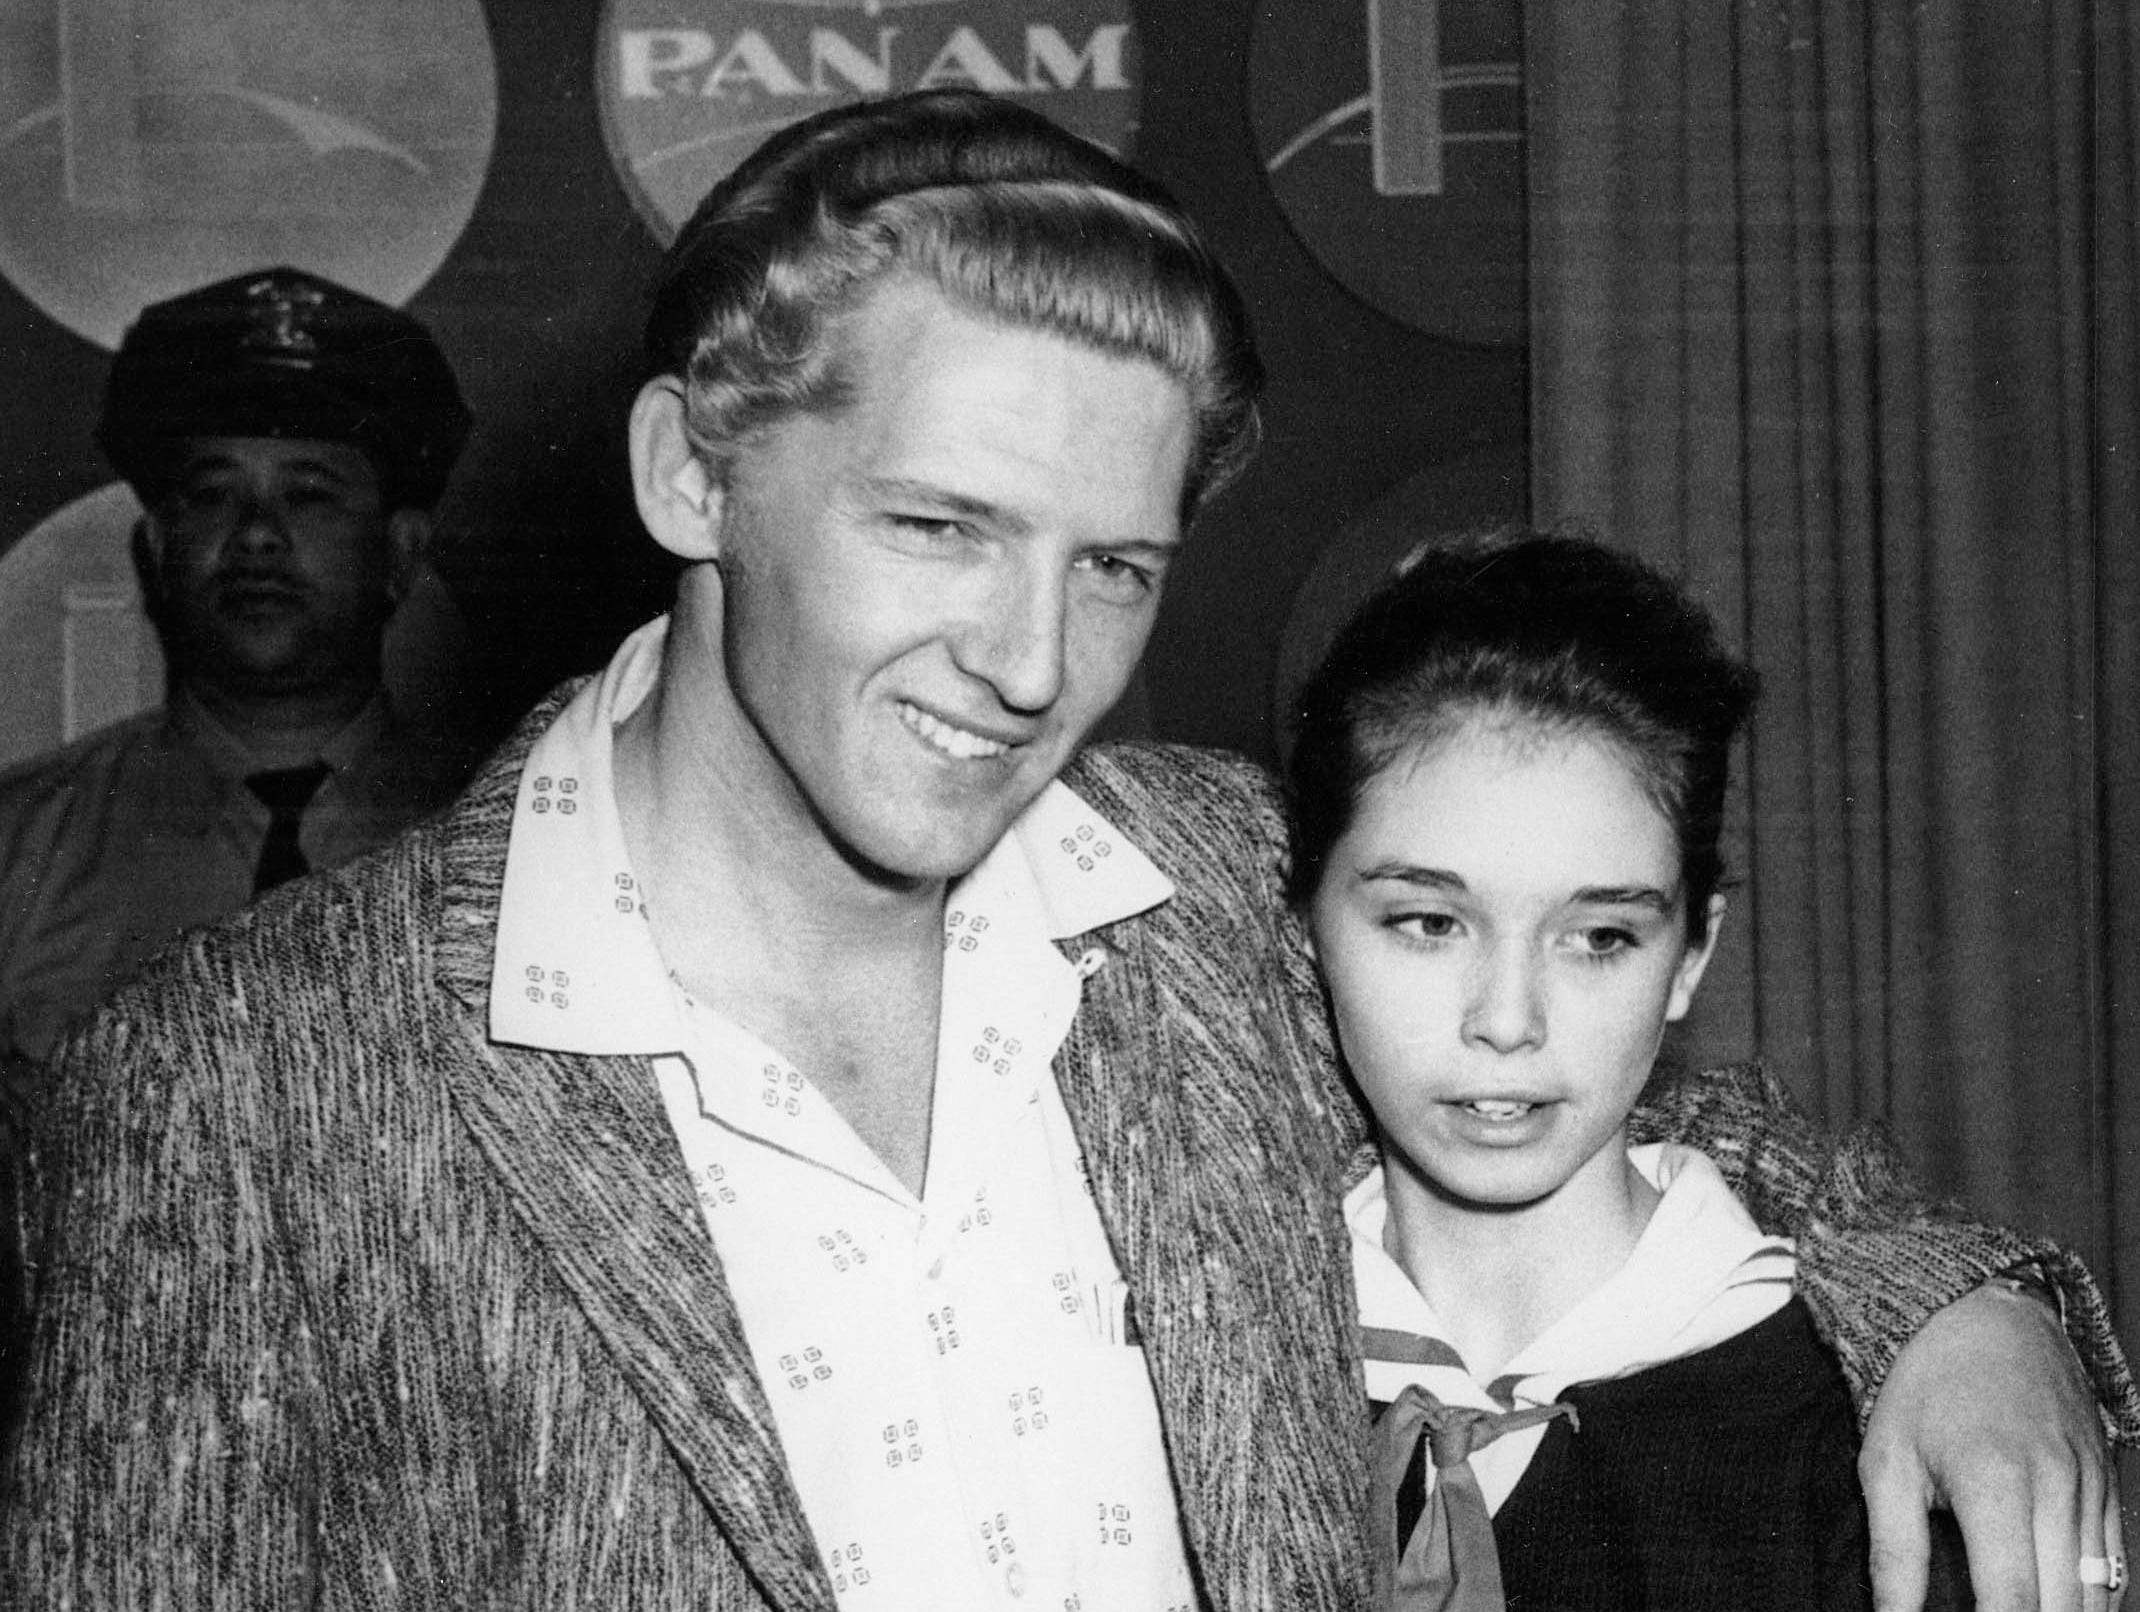 Seen at a London press conference on May 24, 1958 are American Rock 'n' Roll singer Jerry Lee Lewis, 22, and his cousin, Myra Brown, 13, whom he took as his third wife before divorcing his second.  (AP Photo)